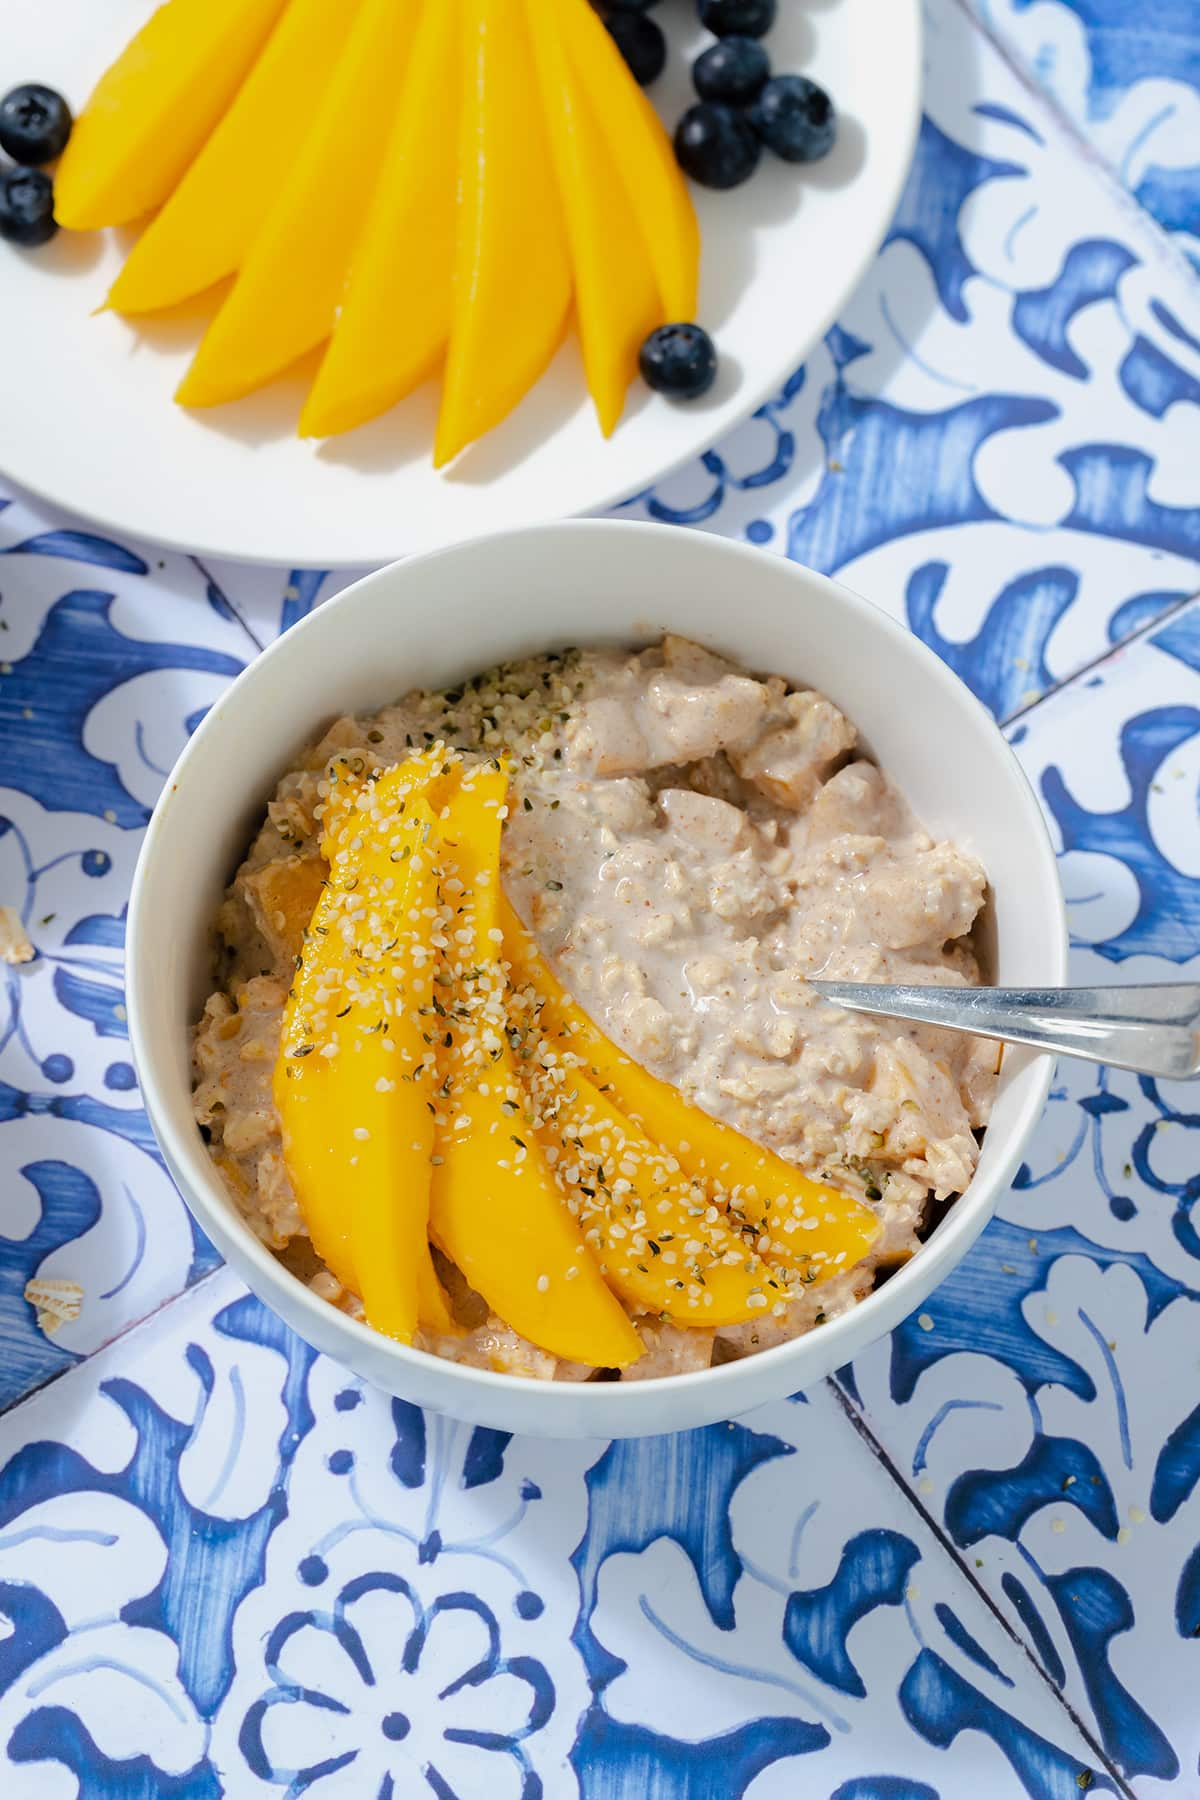 Mango overnight oats in a white bowl on a blue tile background. Mango on a white plate in the top left corner.